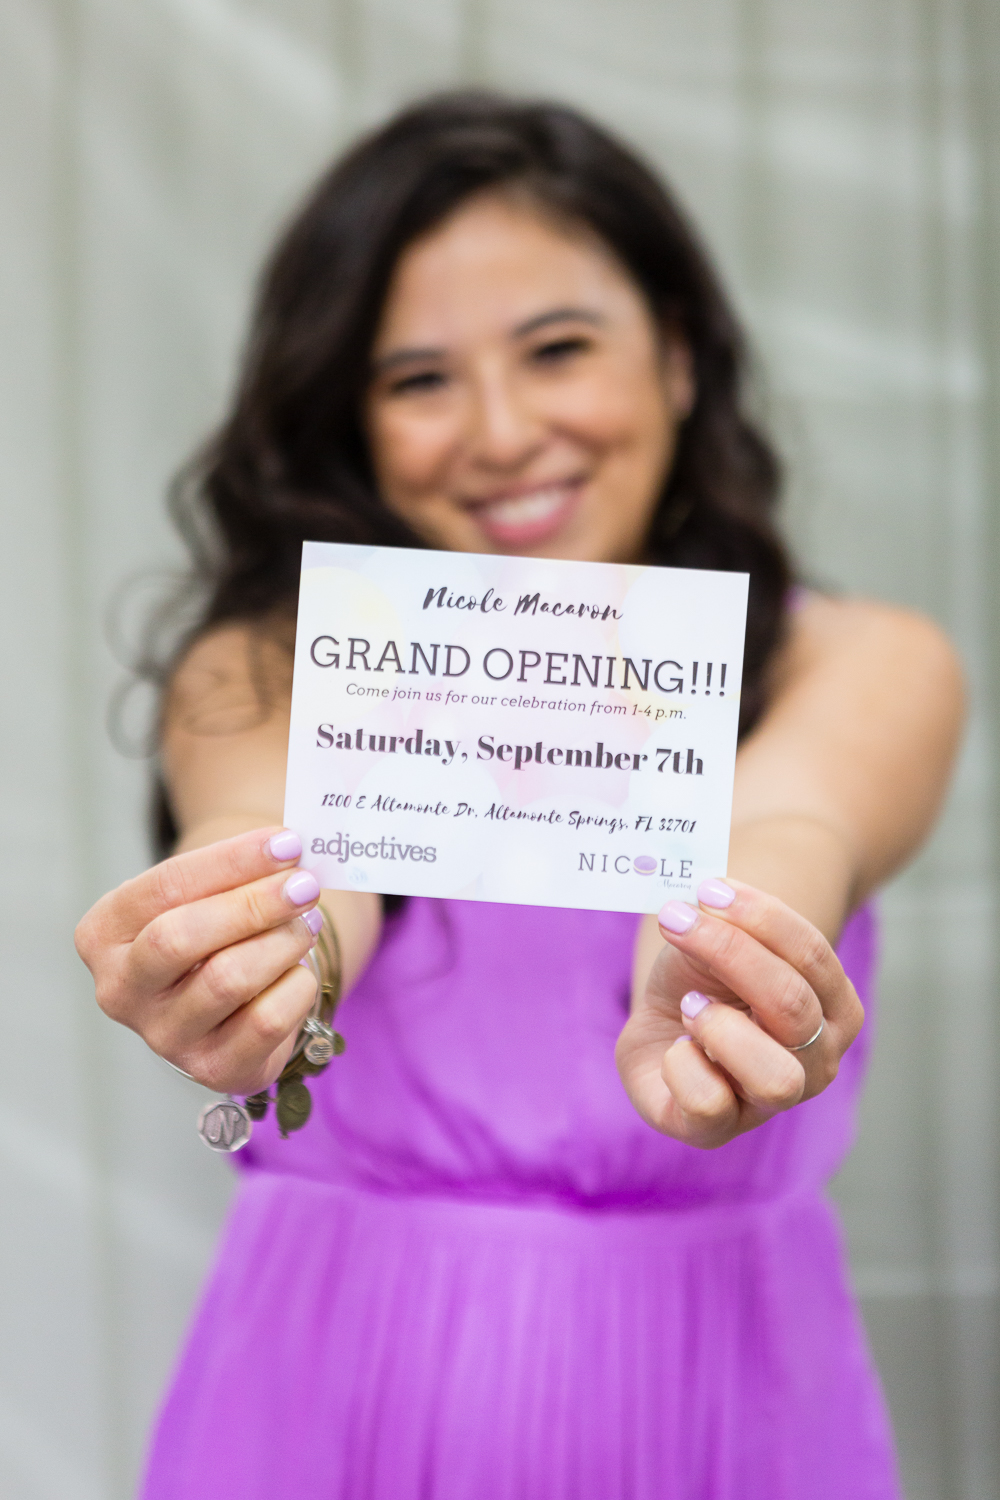 The original grand opening date was September 7, but it was moved up to August 31.